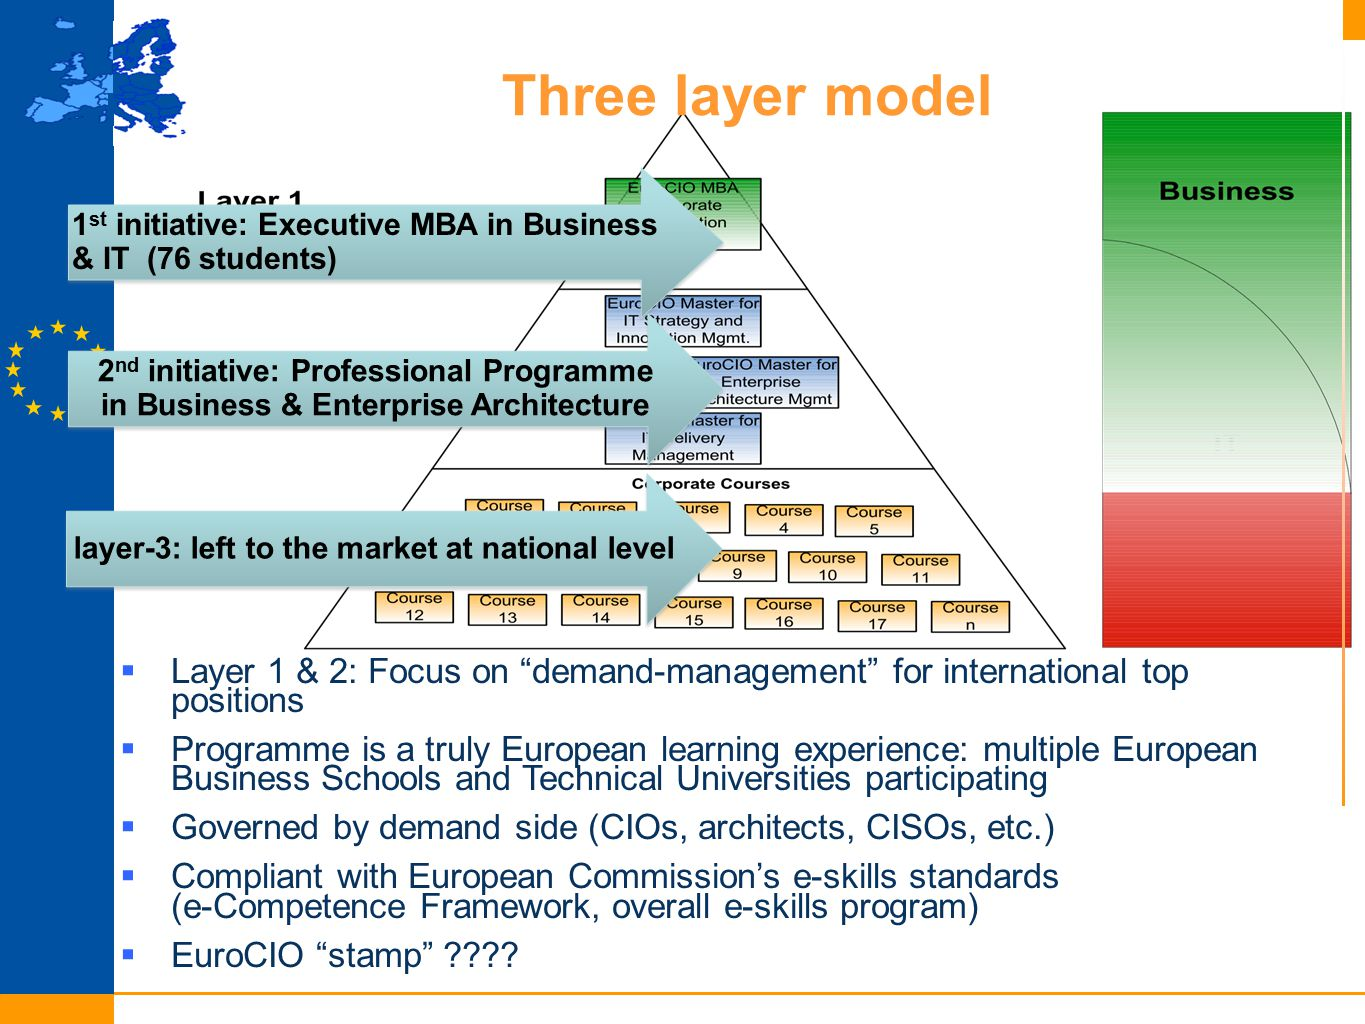 Three layer model  Layer 1 & 2: Focus on demand-management for international top positions  Programme is a truly European learning experience: multiple European Business Schools and Technical Universities participating  Governed by demand side (CIOs, architects, CISOs, etc.)  Compliant with European Commission's e-skills standards (e-Competence Framework, overall e-skills program)  EuroCIO stamp .